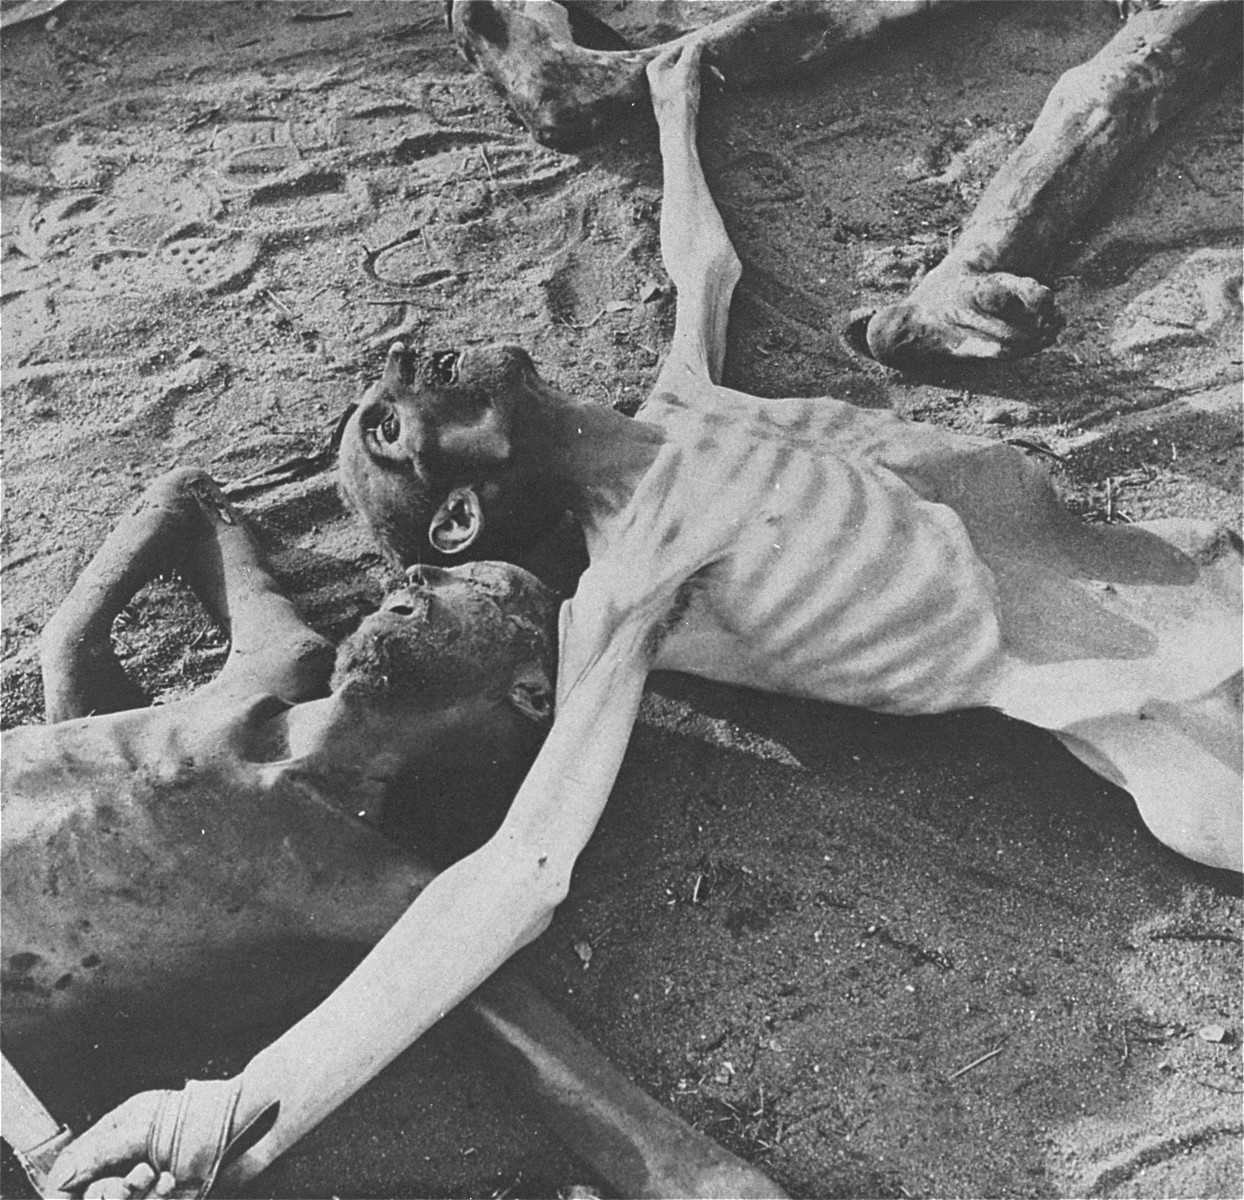 """The bodies of former prisoners lie on the ground in the newly liberated Bergen-Belsen concentration camp.  Th original caption reads """"An incredible sight - similar to which is seen in all parts of the camp.""""  Caption from Clark Kinnaird's book """"This Must Not Happen Again!"""" (New York, Pilot Press, 1945) reads: """"Crucified on the double-cross of fascism."""""""